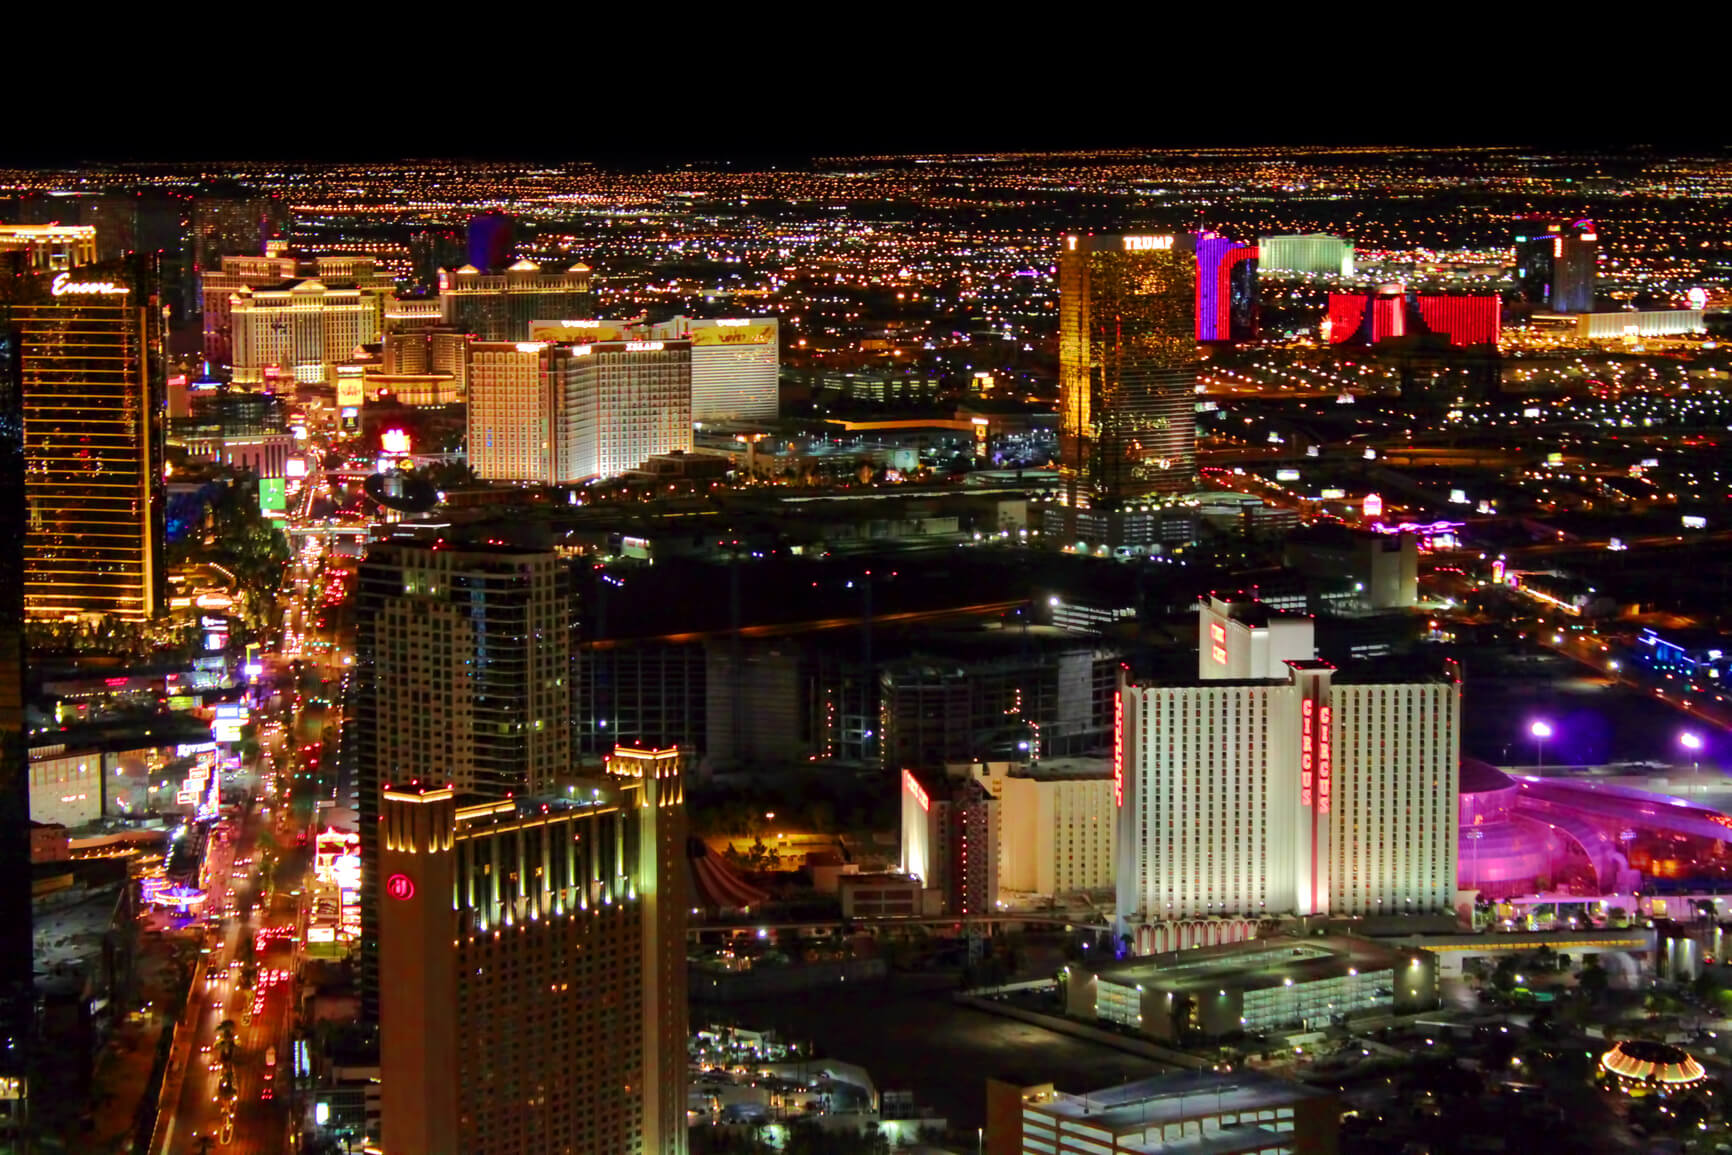 Non-stop from Dallas, Texas to Las Vegas (& vice versa) for only $74 roundtrip (Jan-Feb dates)